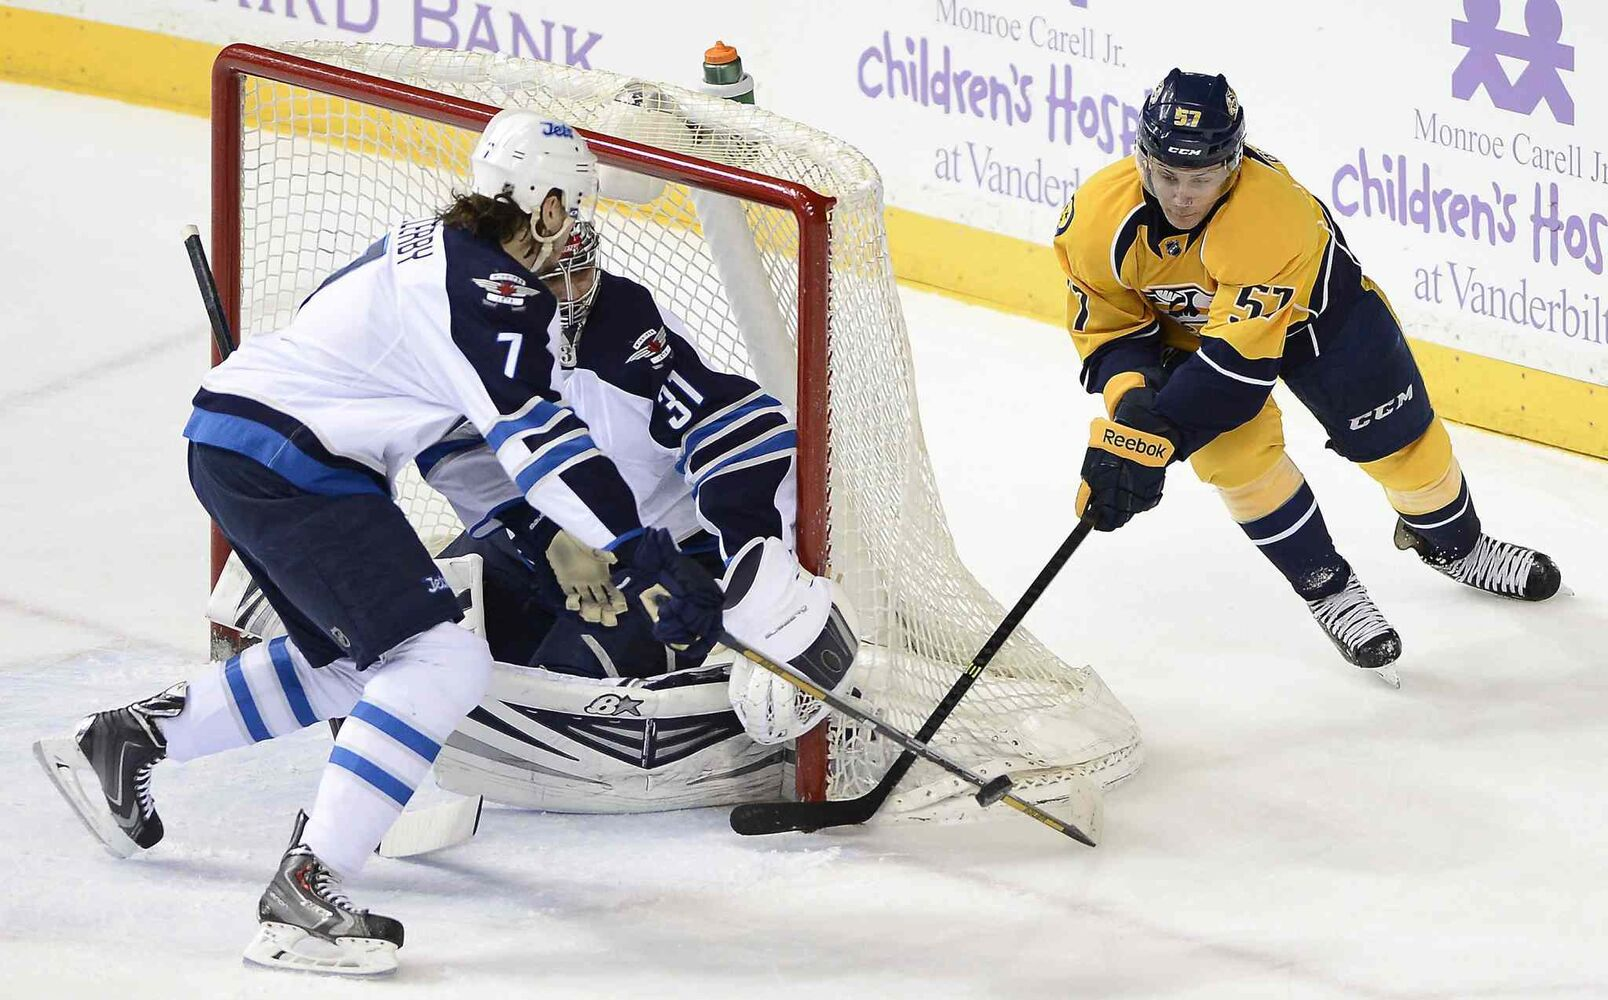 Nashville Predators forward Gabriel Bourque (57) has his first-period shot blocked by Winnipeg Jets defenseman Keaton Ellerby (7) and goalie Ondrej Pavelec (31) on Saturday.